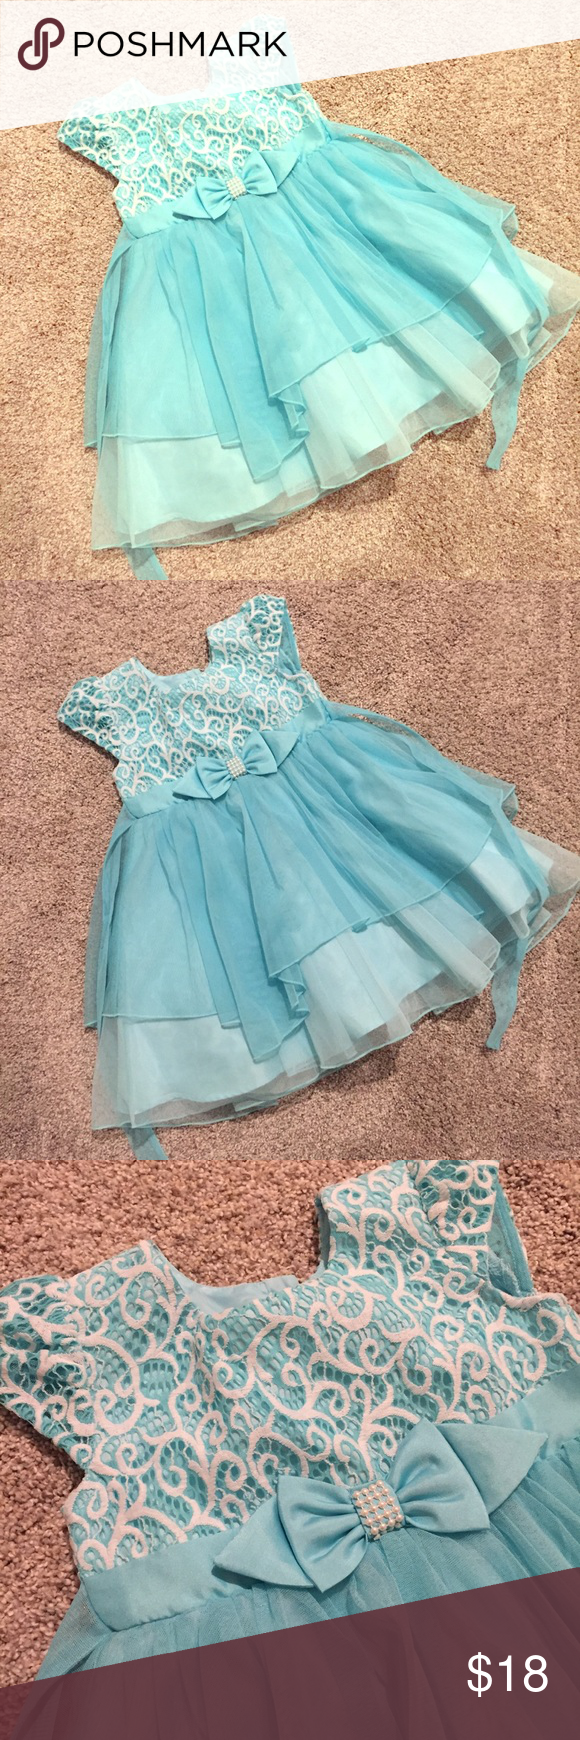 ❄ Little Girl Party Dress ❄ | Blue party dress, Blue party and ...